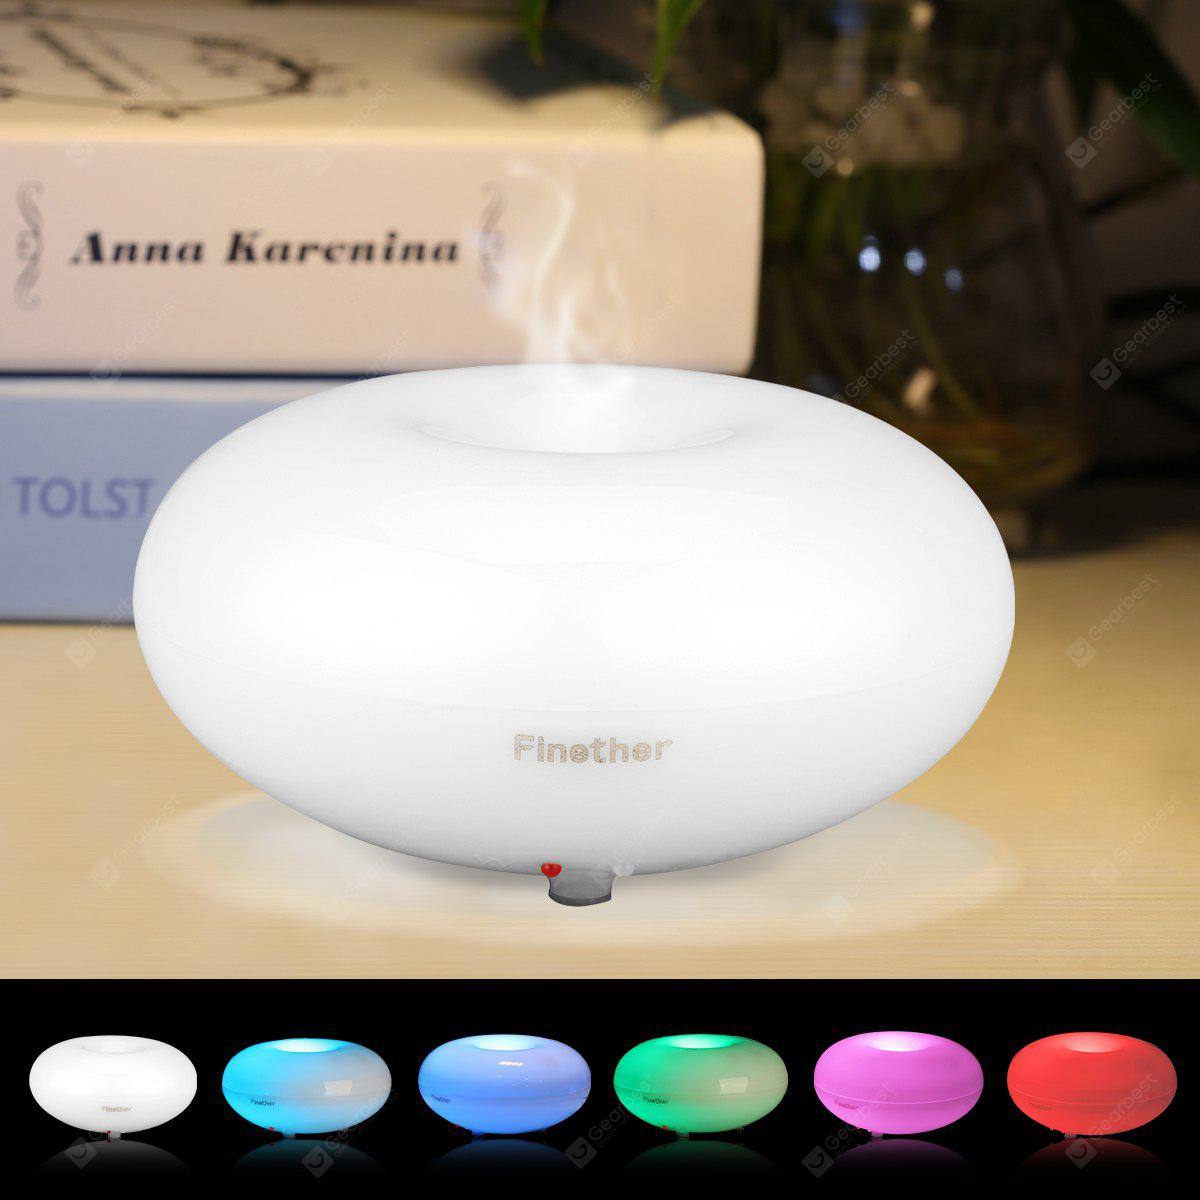 Finether 03k Essential Oil Aroma Diffuser 20 03 Free